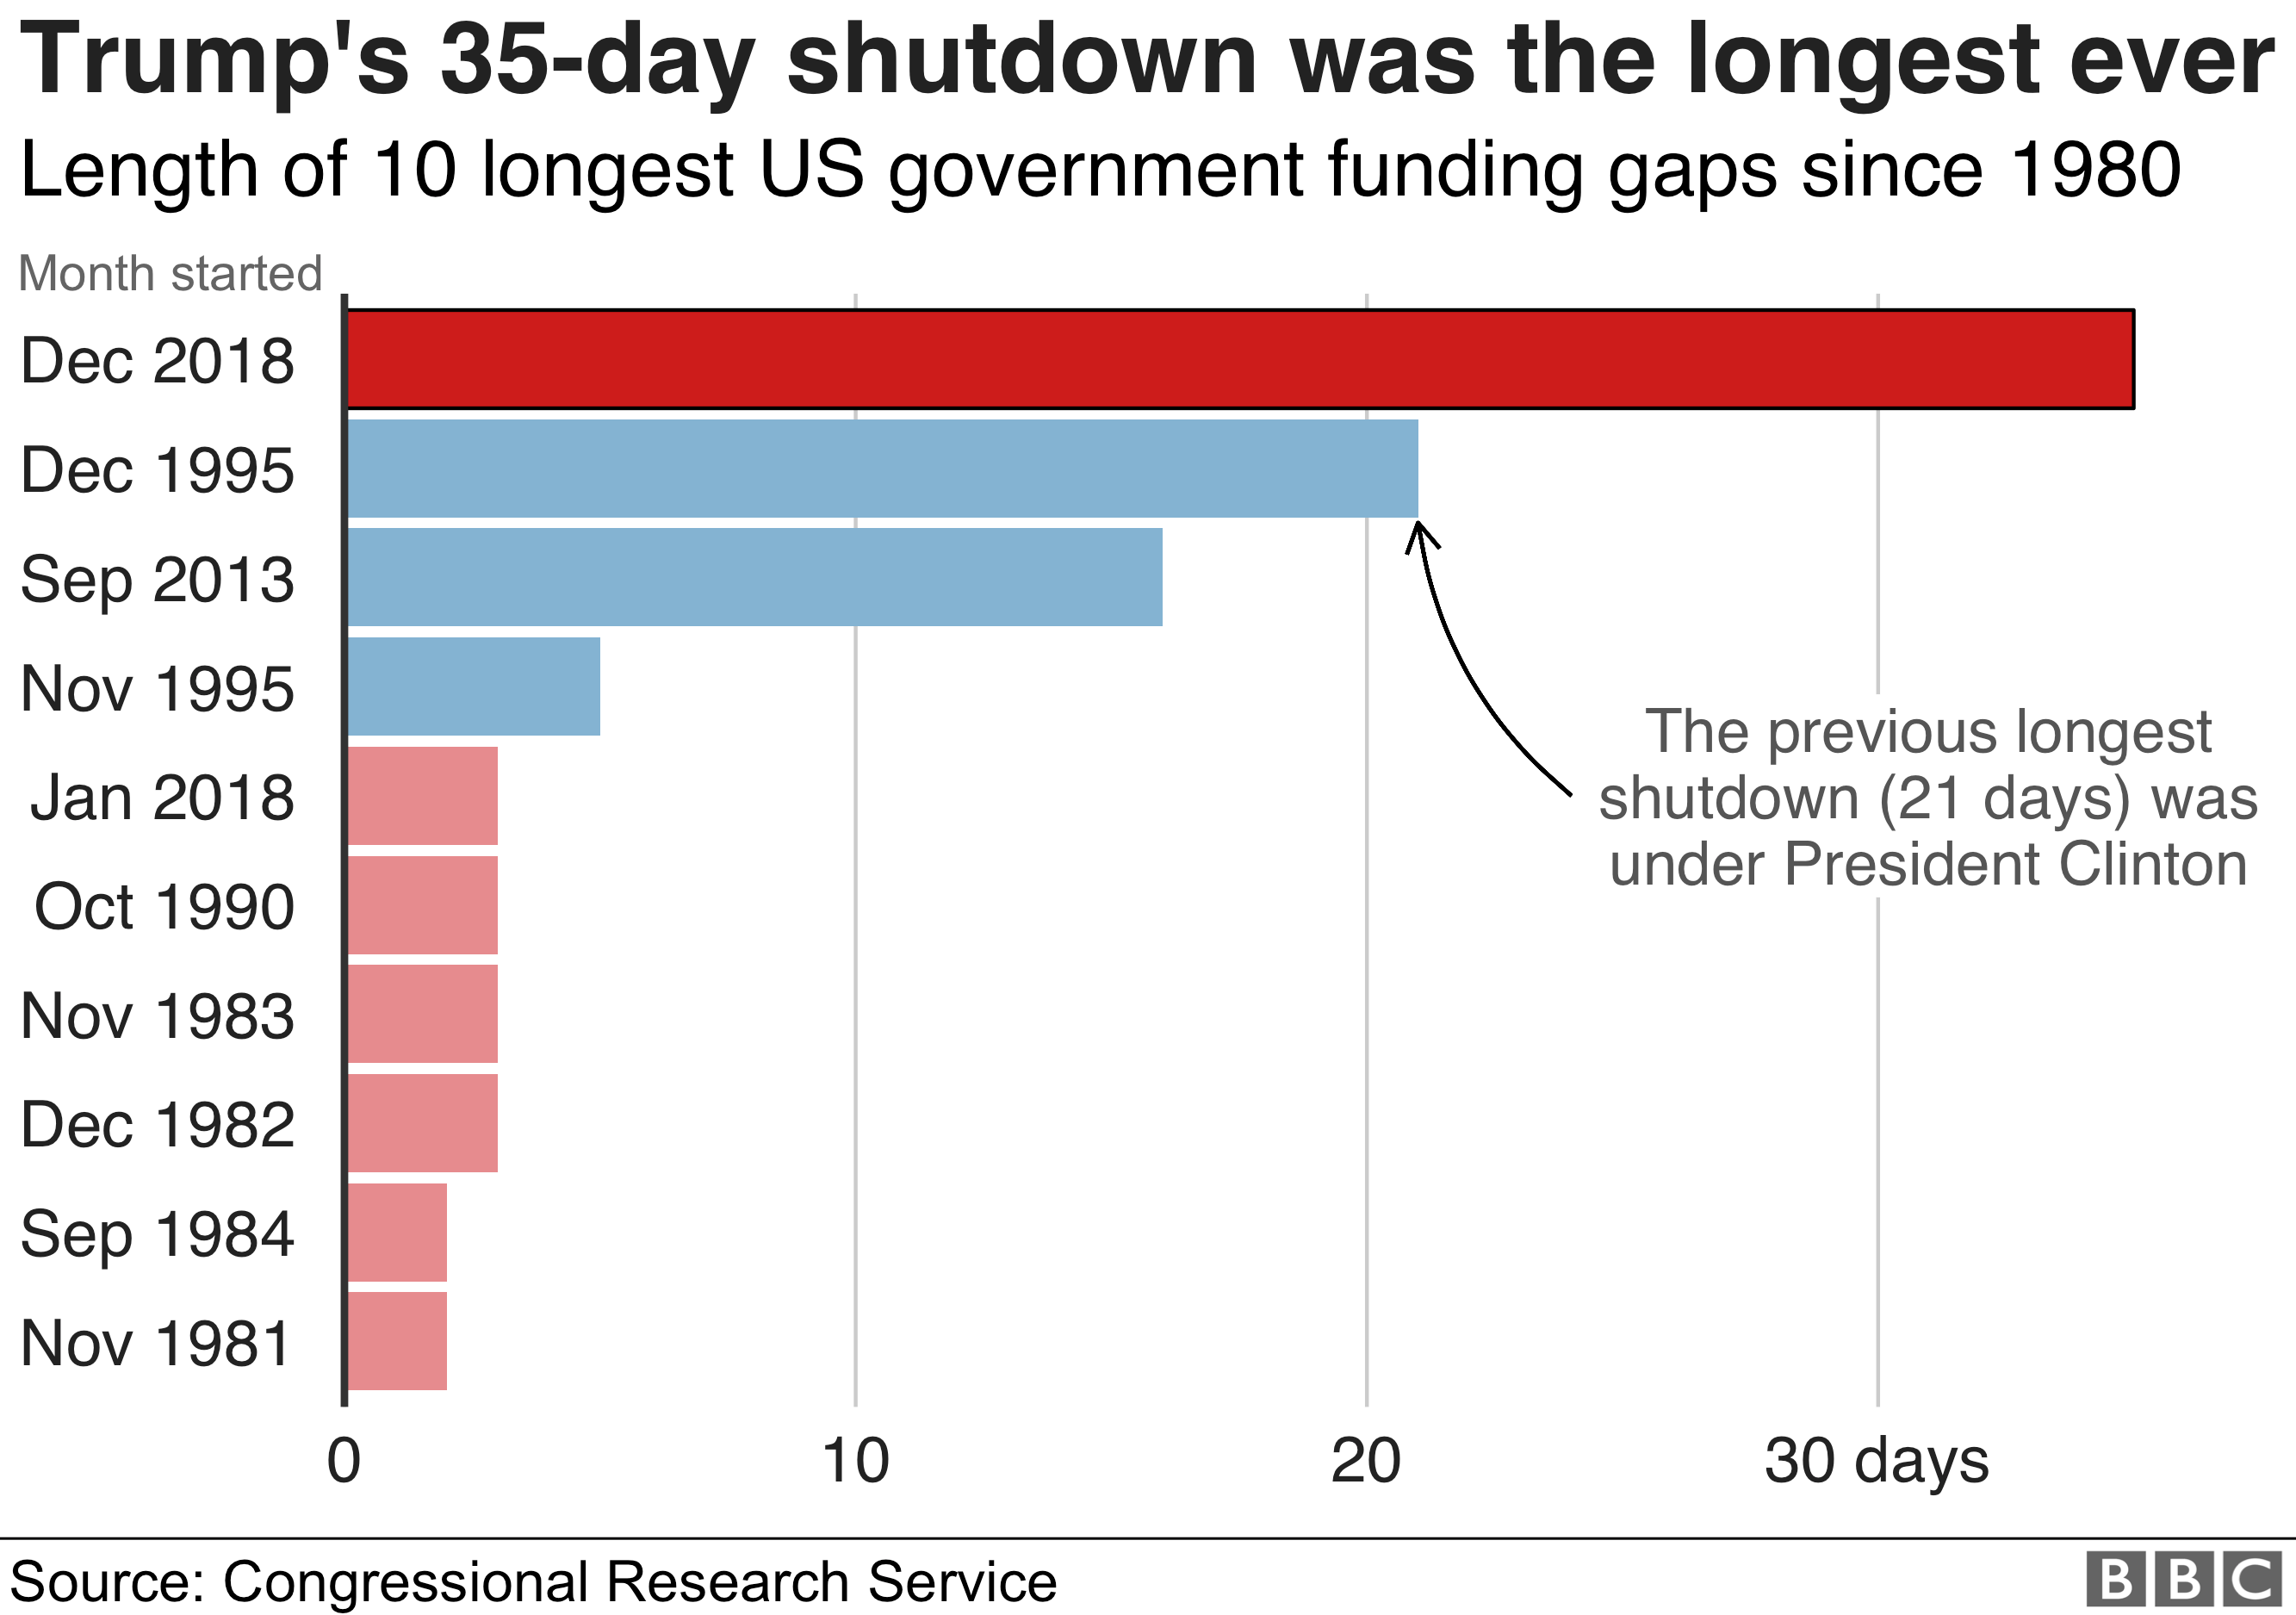 Chart showing how Trump's 35-day shutdown over funding for his border wall was the longest ever gap in government funding